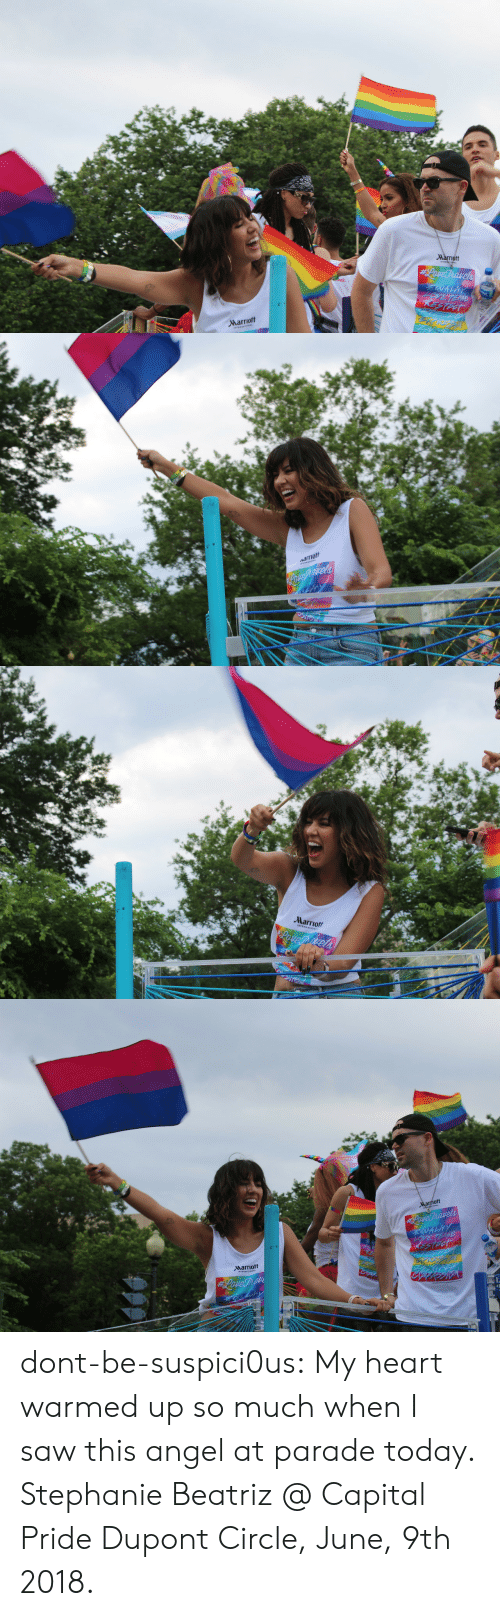 Marriott: Marriott   Marriott   ott  Narriott dont-be-suspici0us: My heart warmed up so much when I saw this angel at parade today.  Stephanie Beatriz @ Capital Pride Dupont Circle, June, 9th 2018.